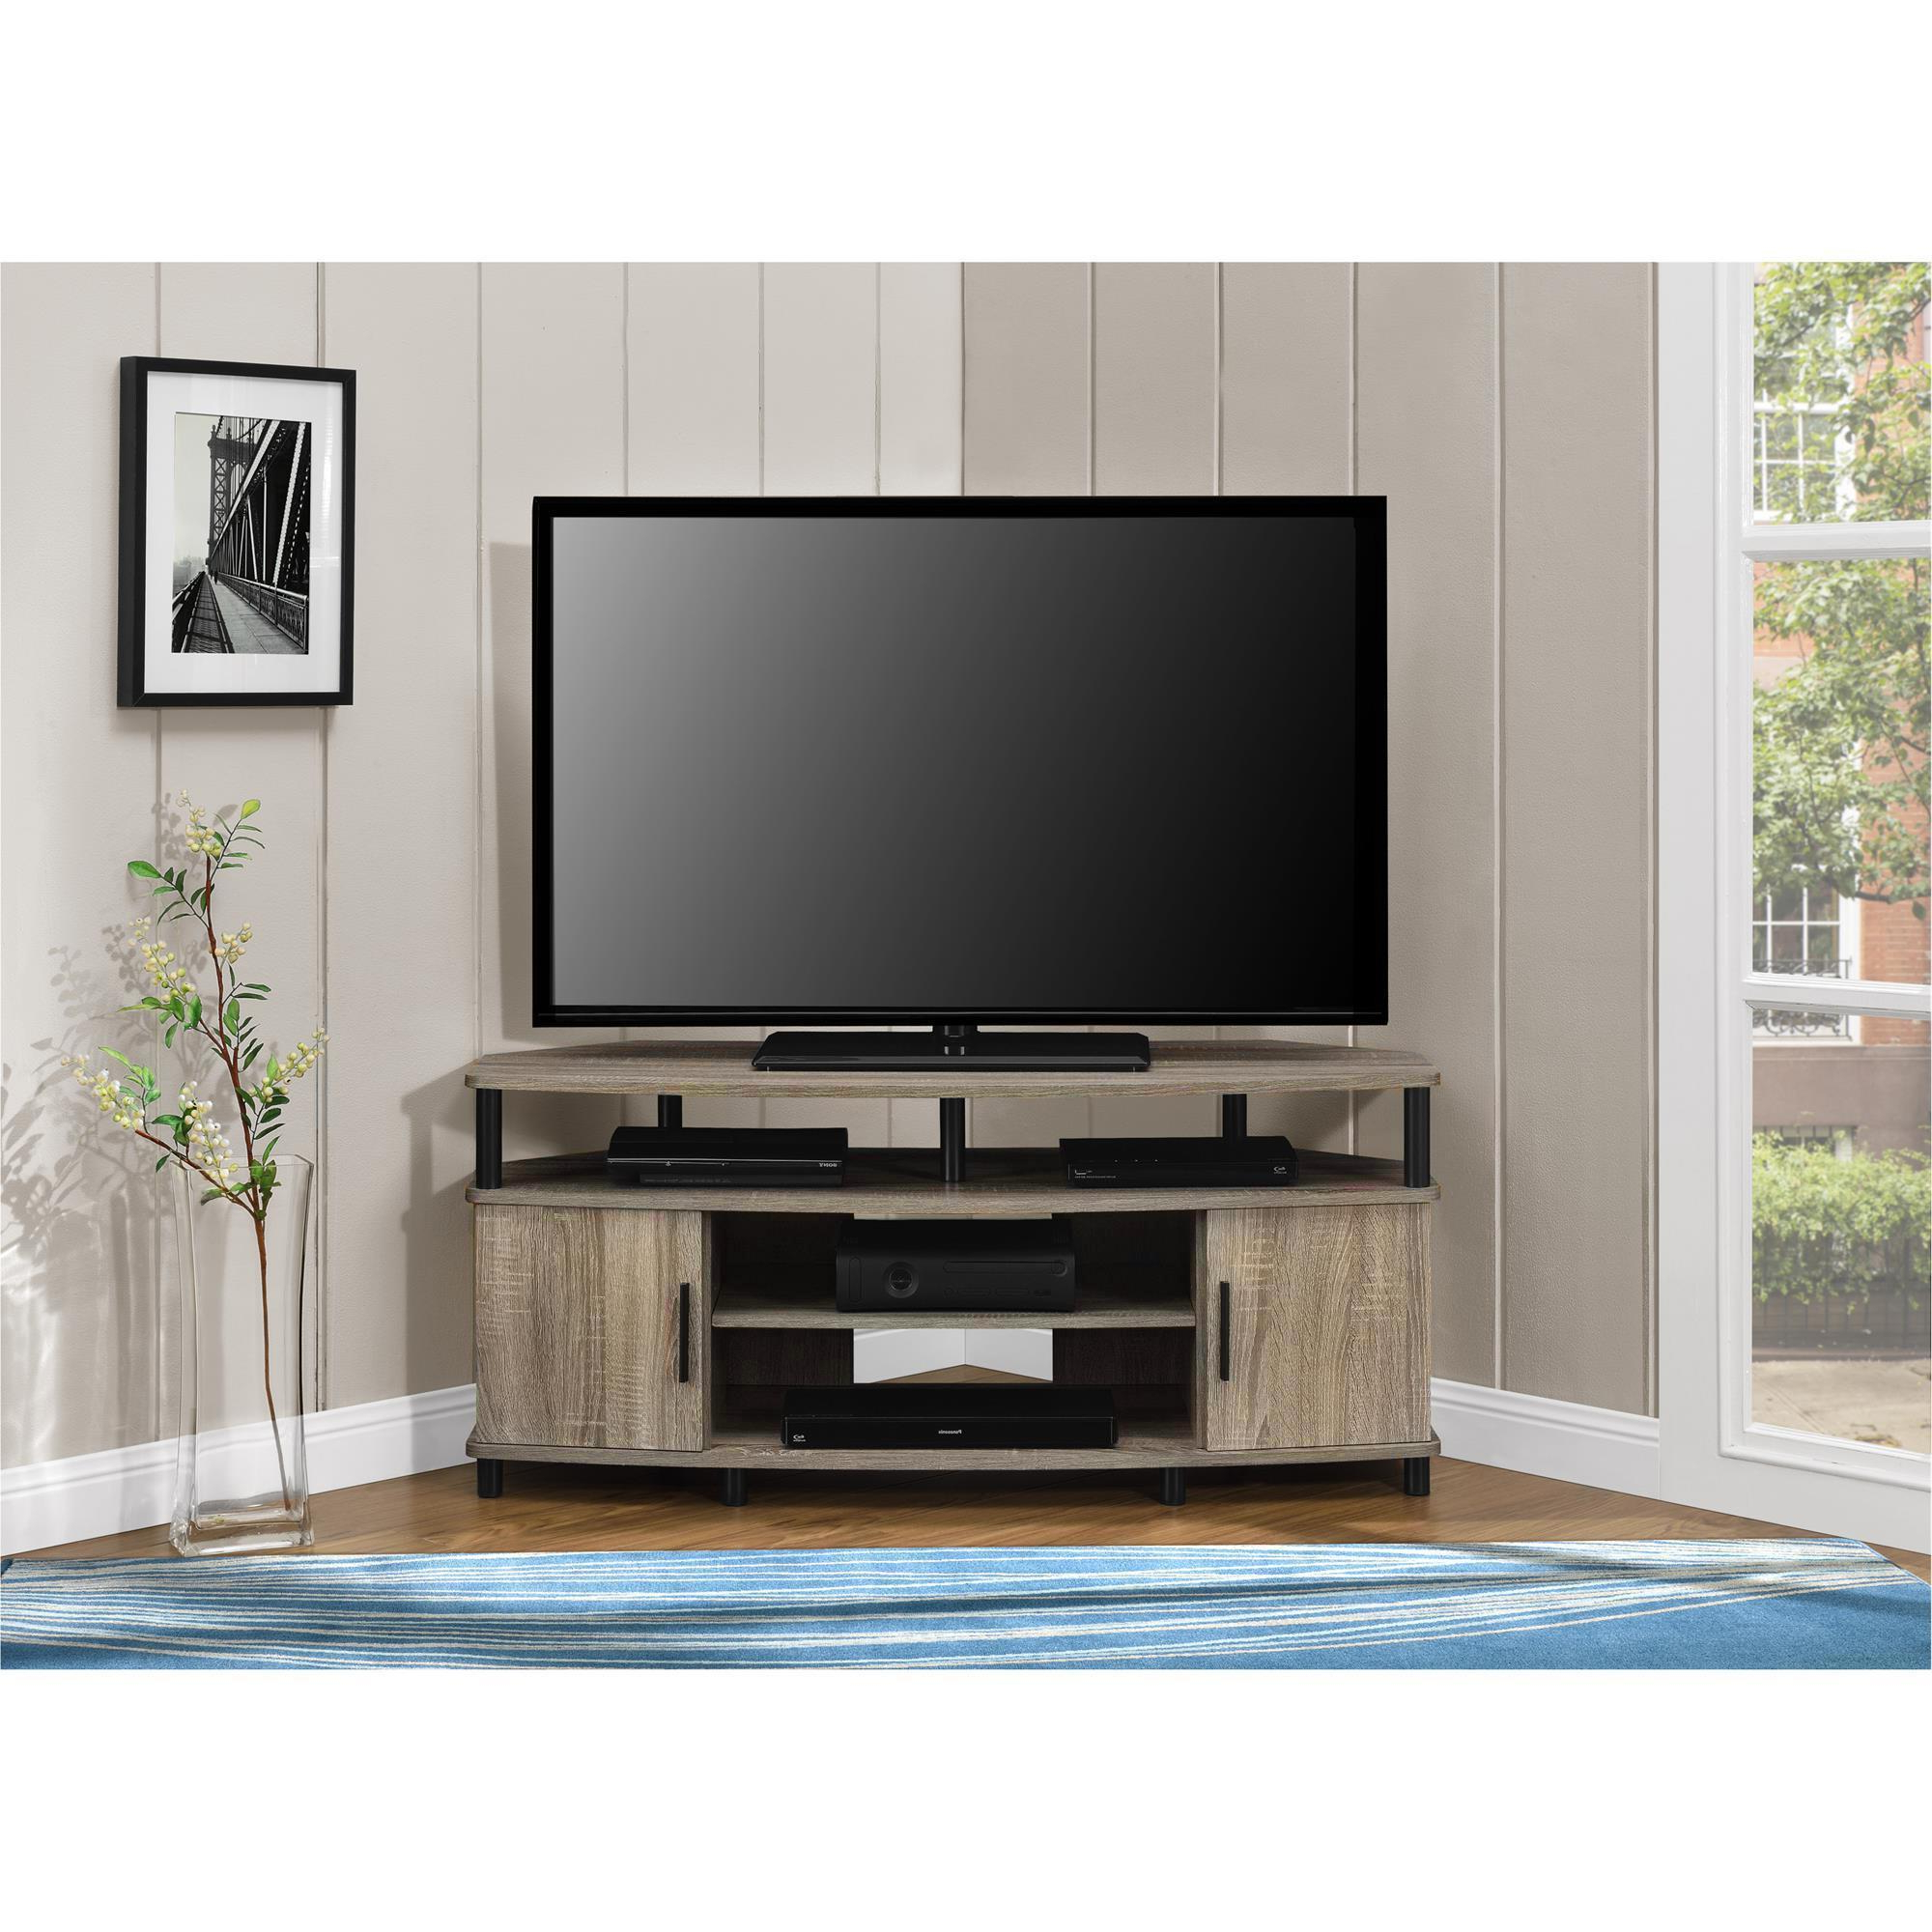 Widely Used Shop Ameriwood Home Carson 50 Inch Sonoma Oak Corner Tv Stand – Free Intended For Unique Corner Tv Stands (View 19 of 20)